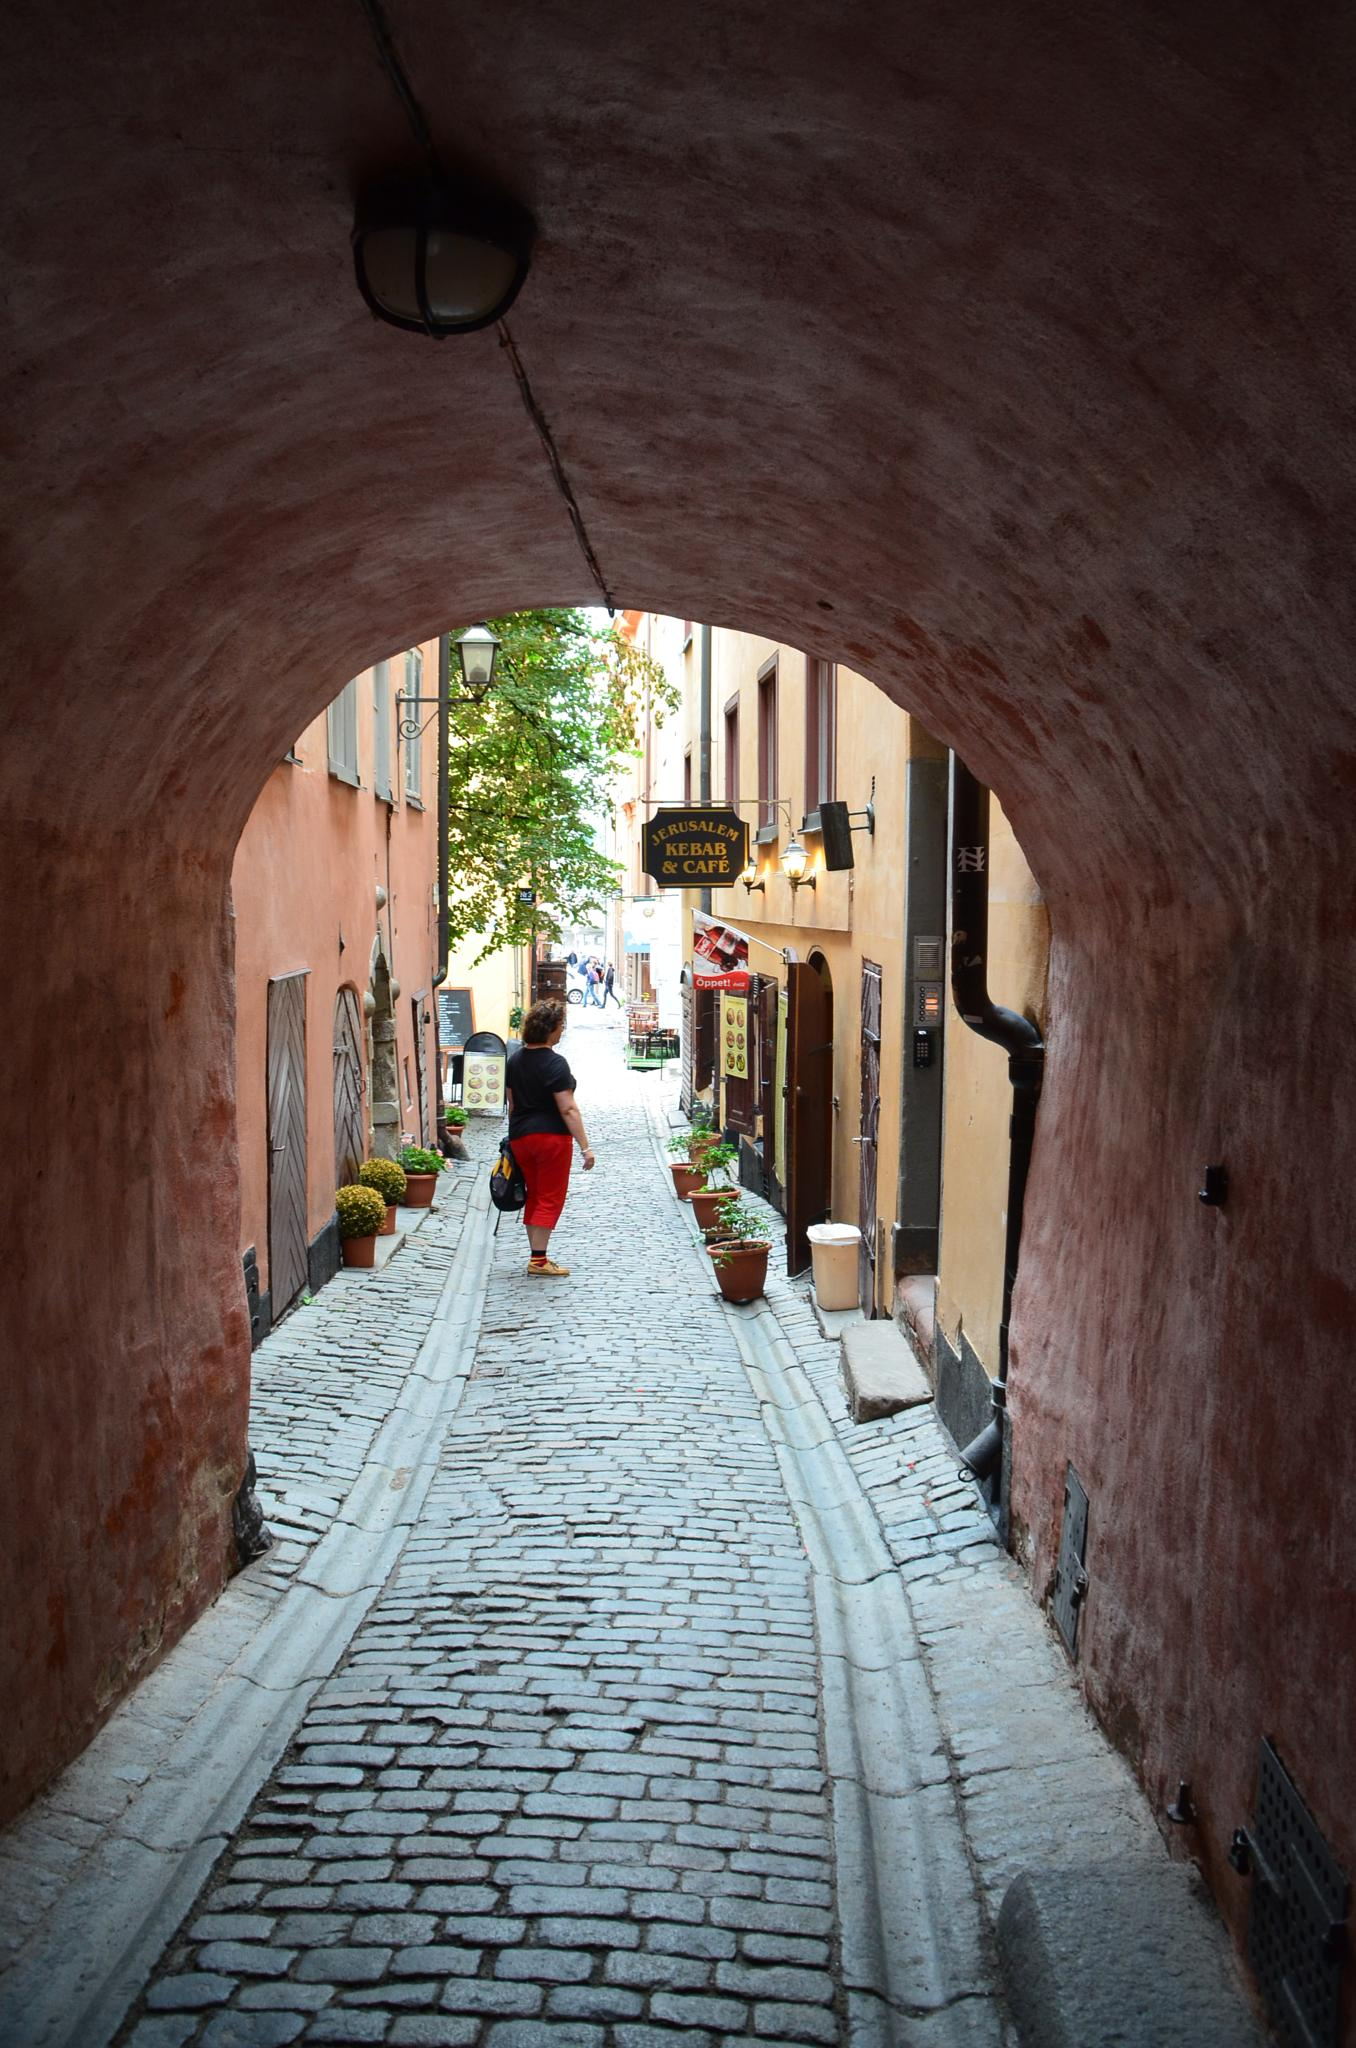 Stockholm - in the old town by Walter Zangl